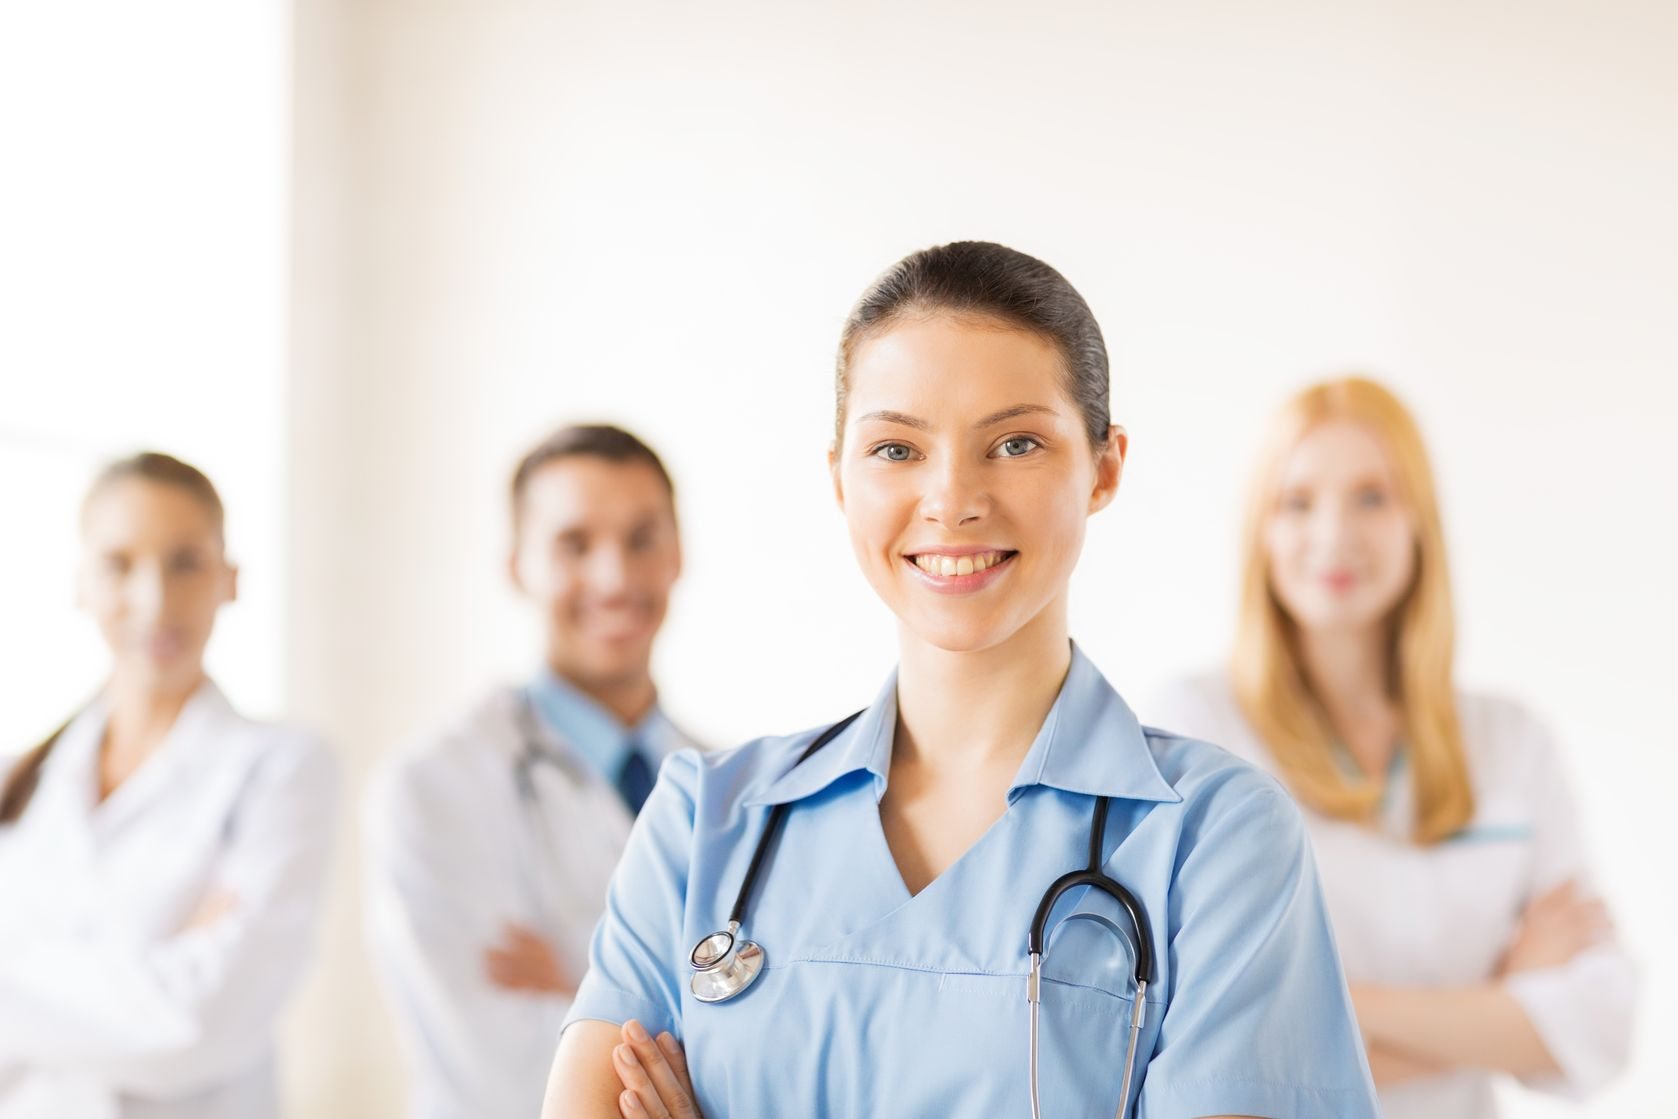 is medical assistant a good career